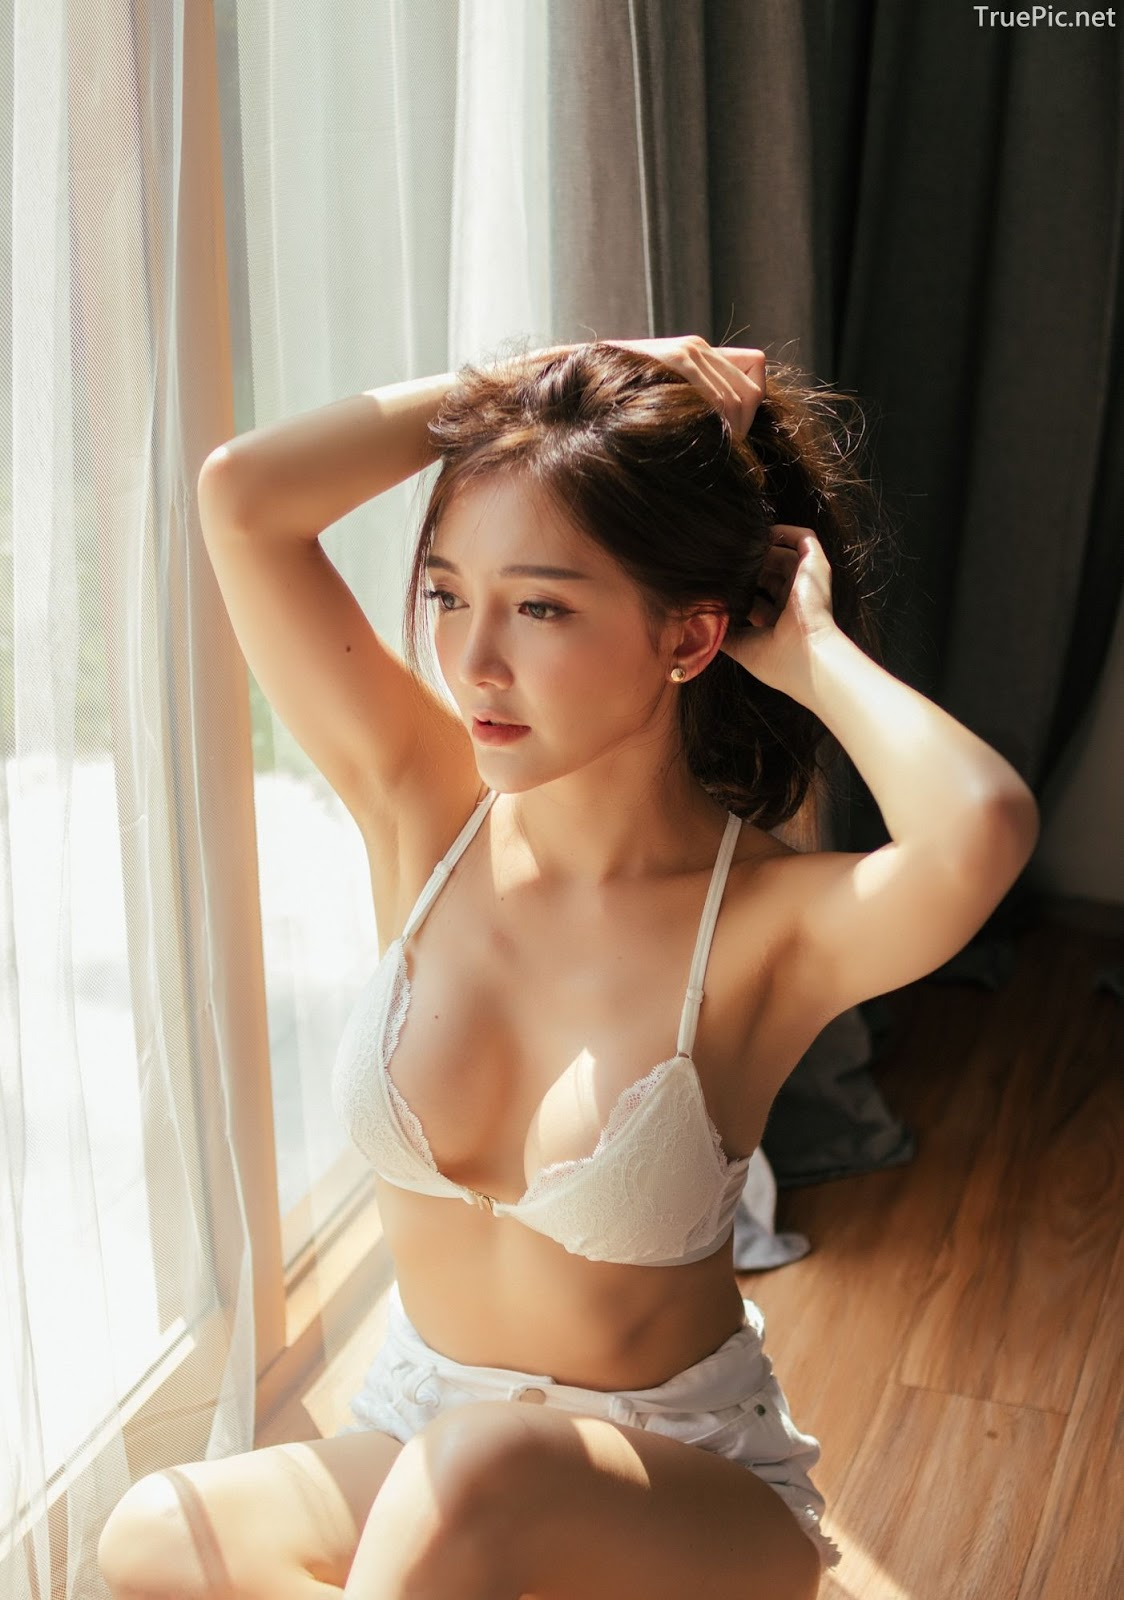 Thailand sexy model Rossarin Klinhom with photo album By your side - Picture 2